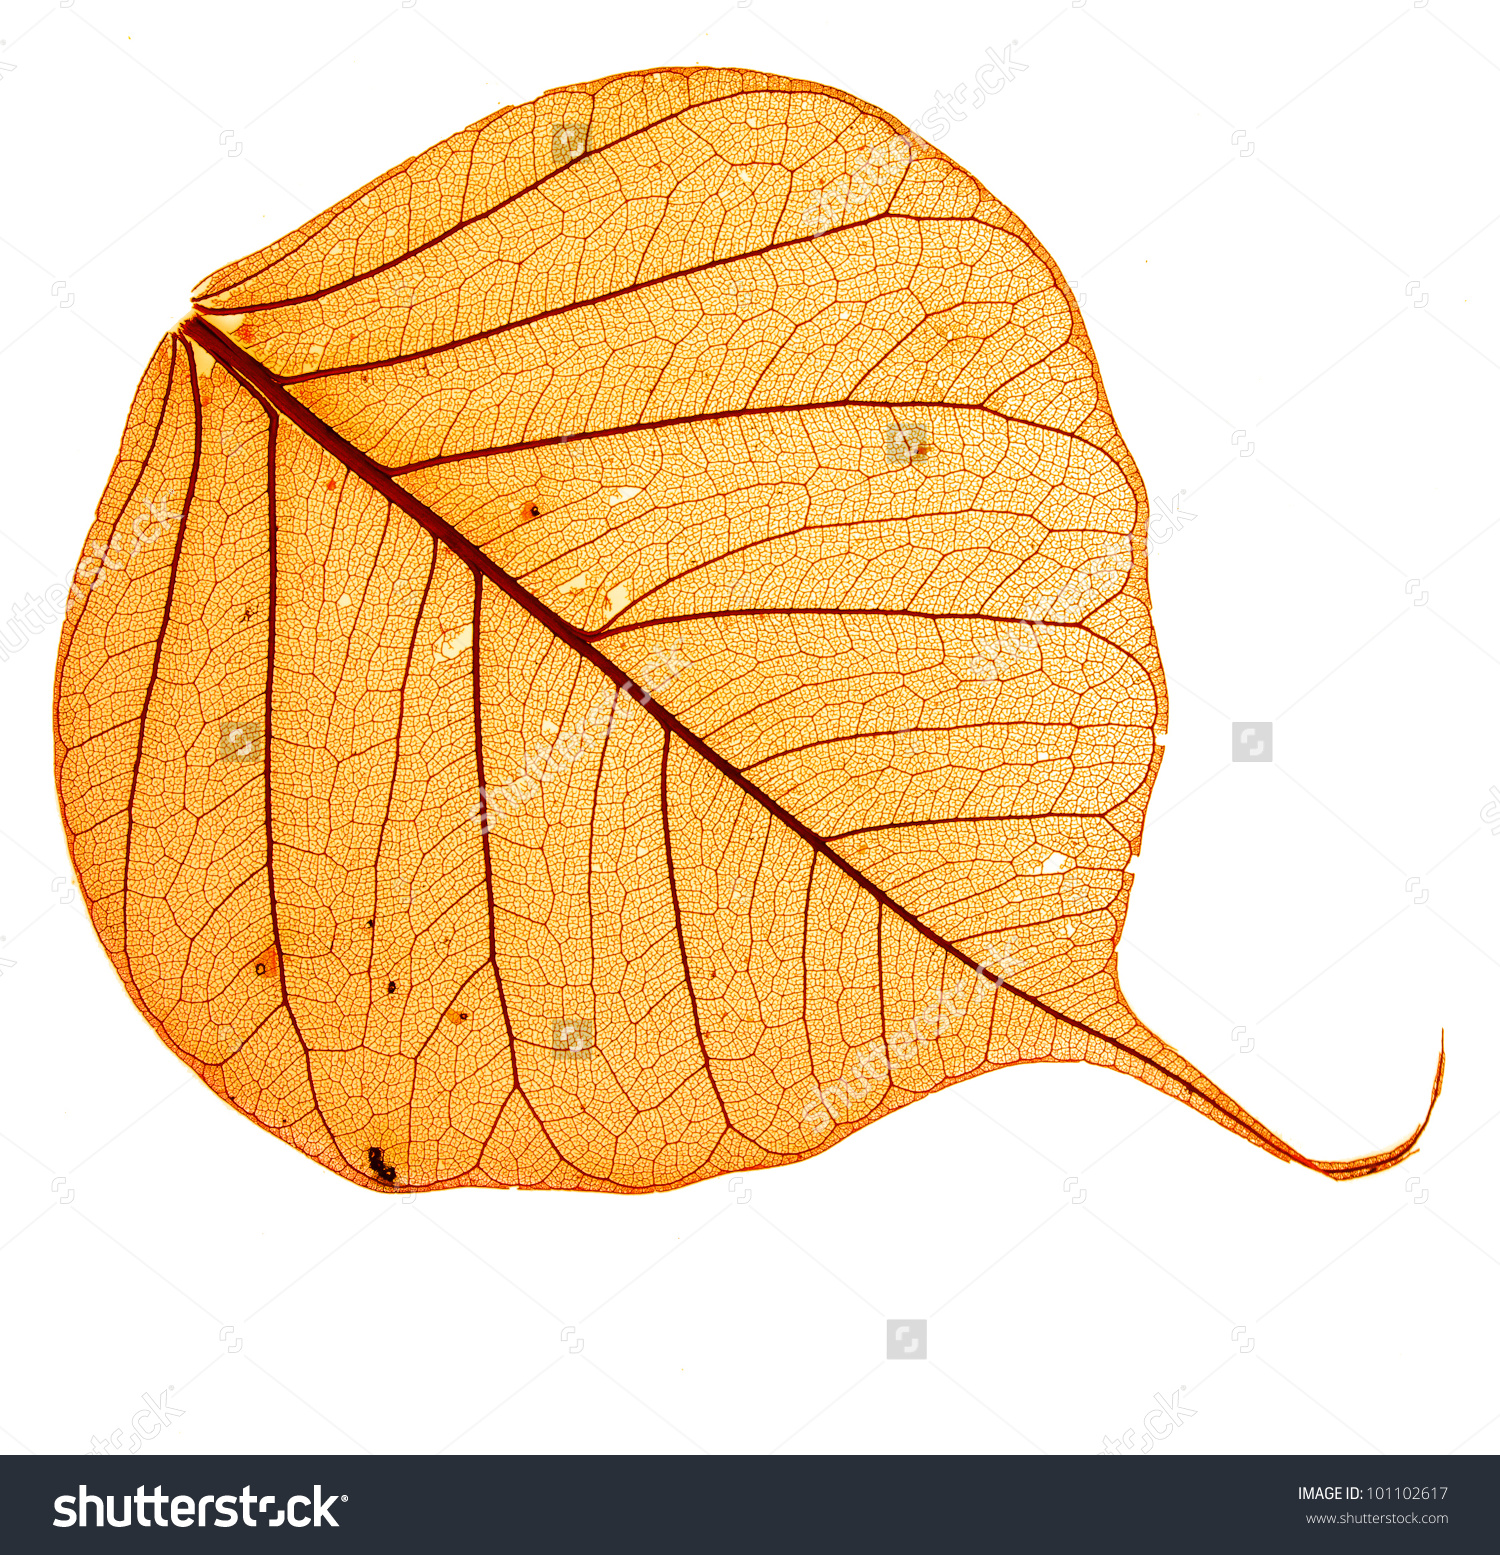 One Orange Dry Leaf Bodhi Structure Stock Photo 101102617.